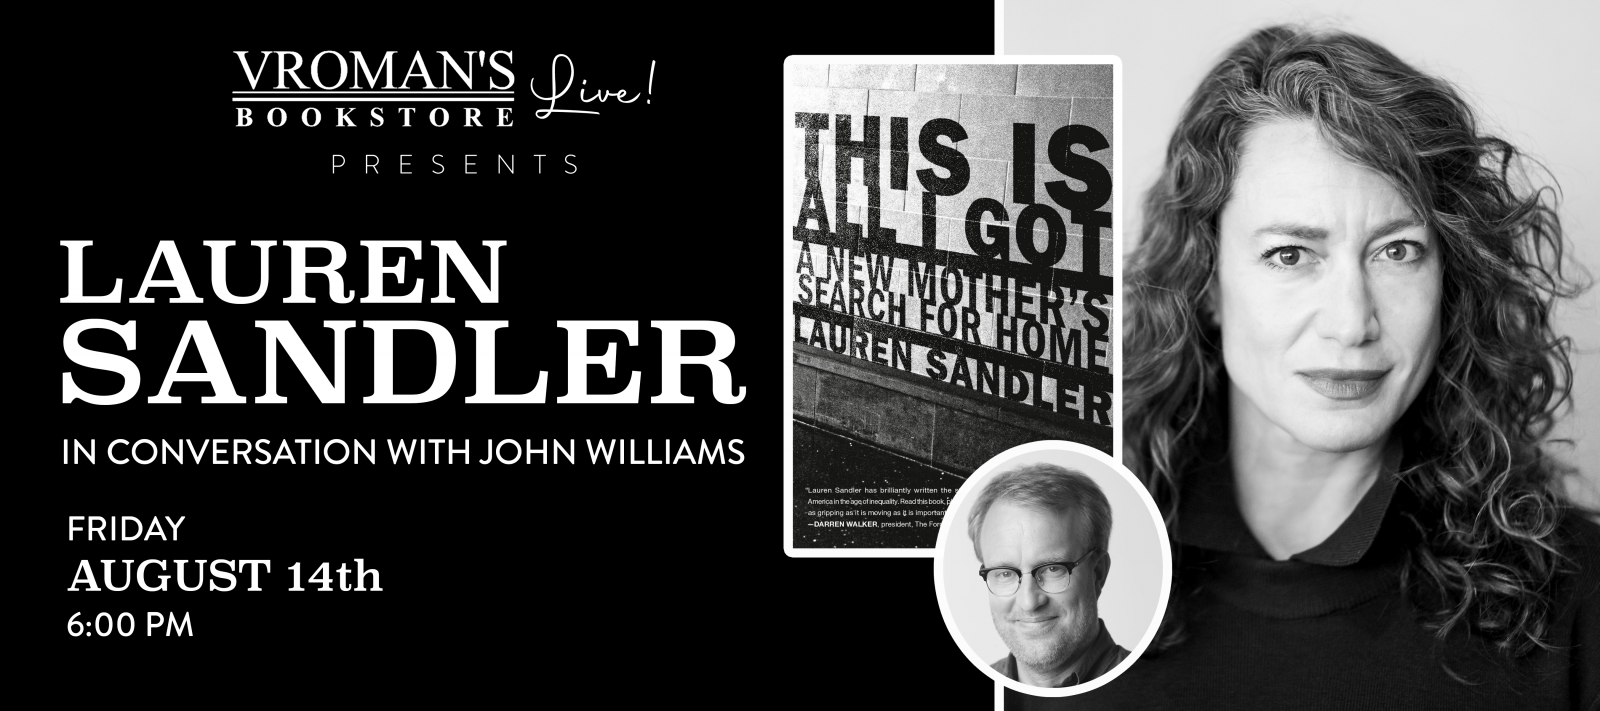 Vroman's Live presents Lauren Sandler, in conversation with John Williams, on Friday August 14th at 6pm